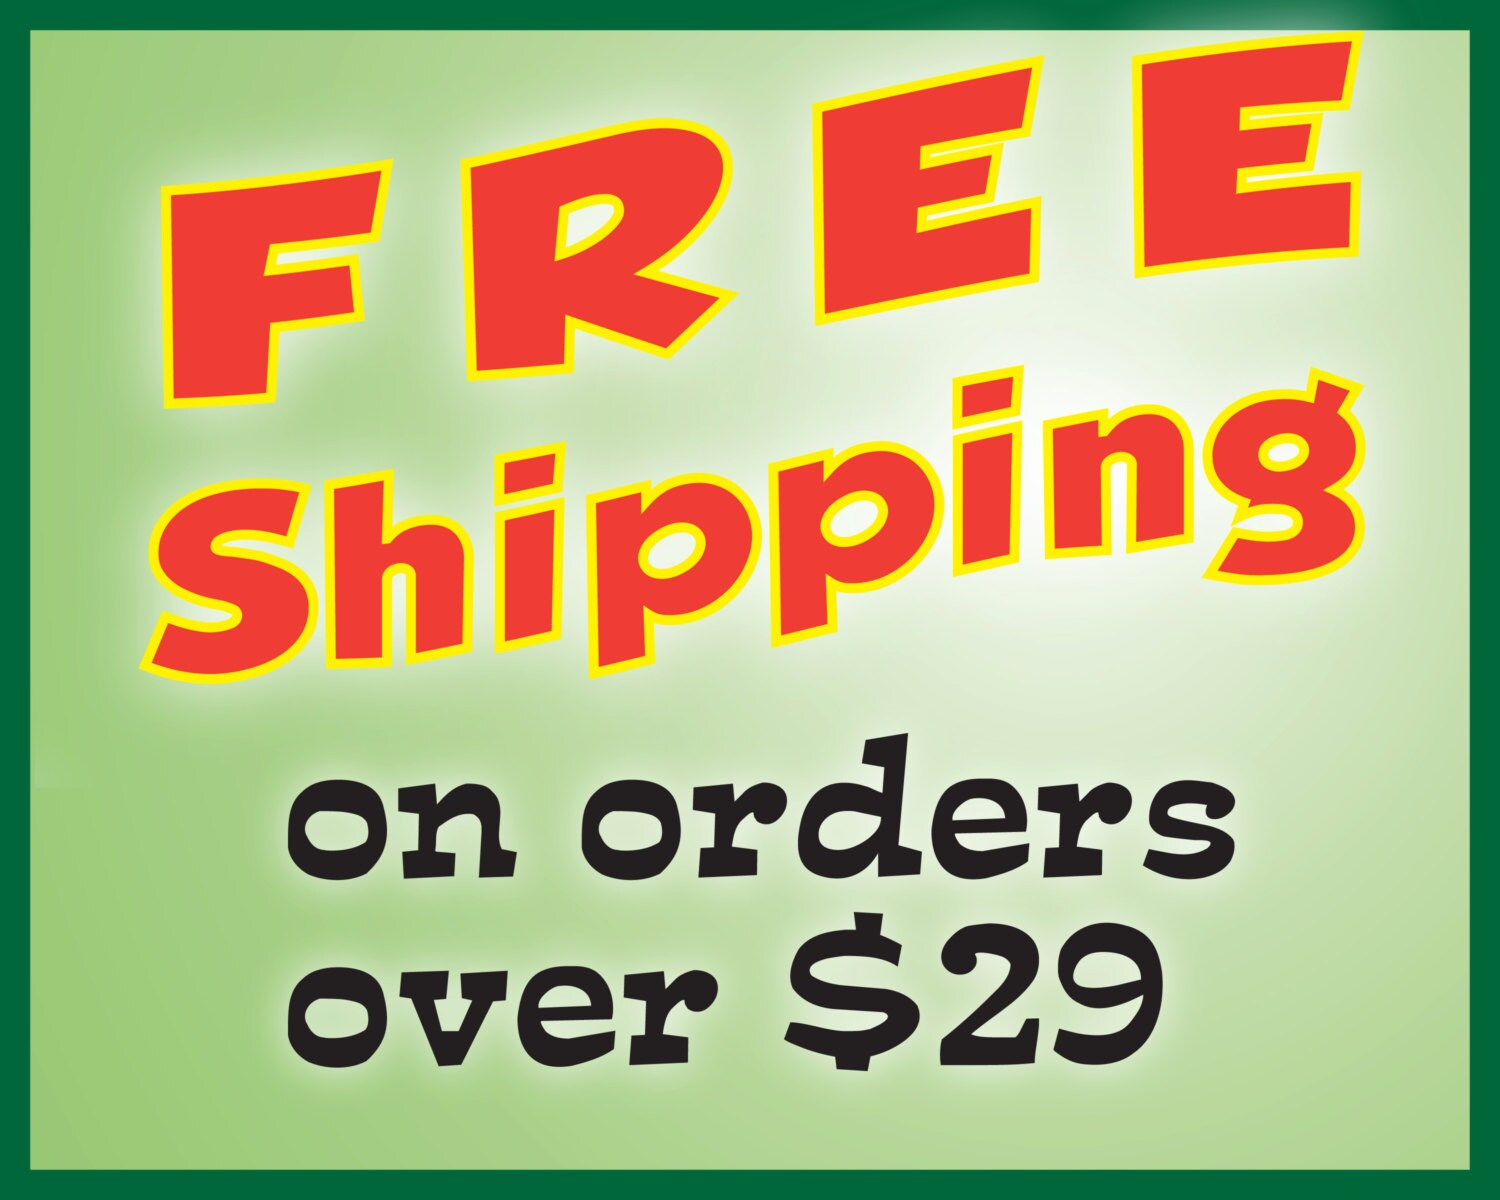 etsy free shipping on orders over